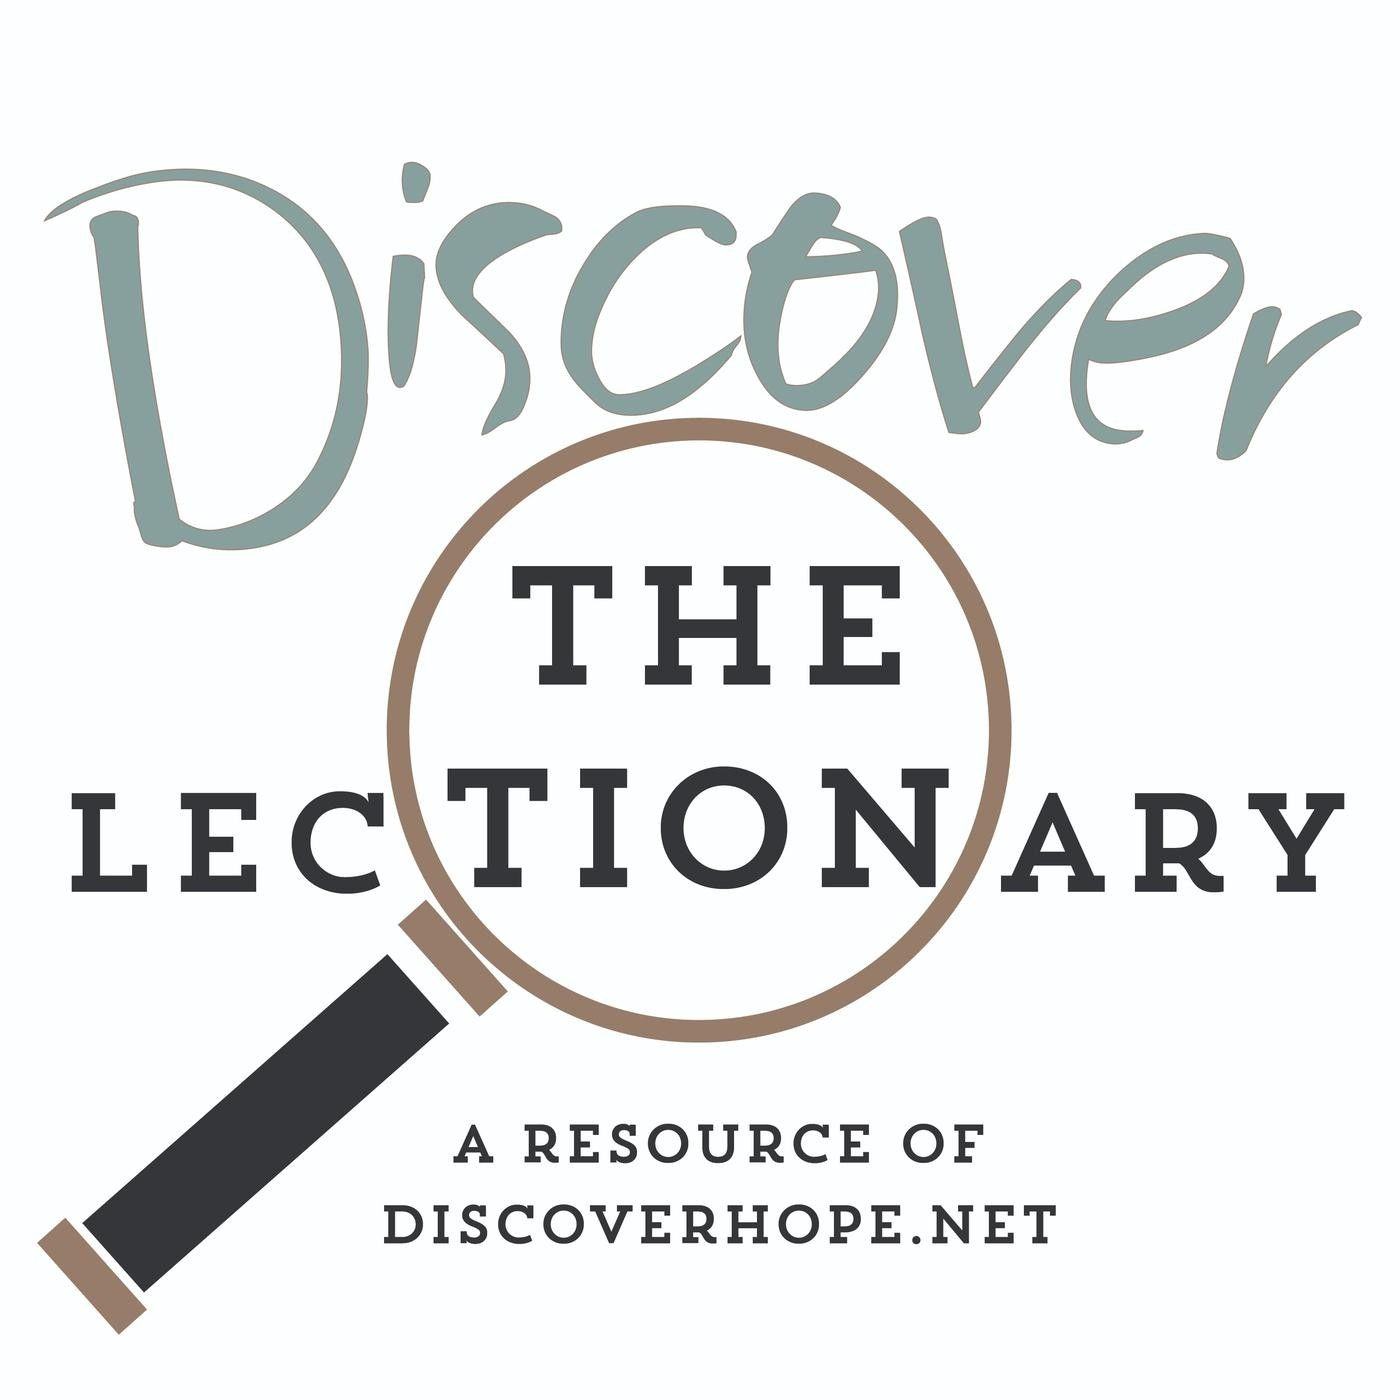 Discover The Lectionary (Podcast) - Richard Parrish, Bob  Advent Scriptures 2021